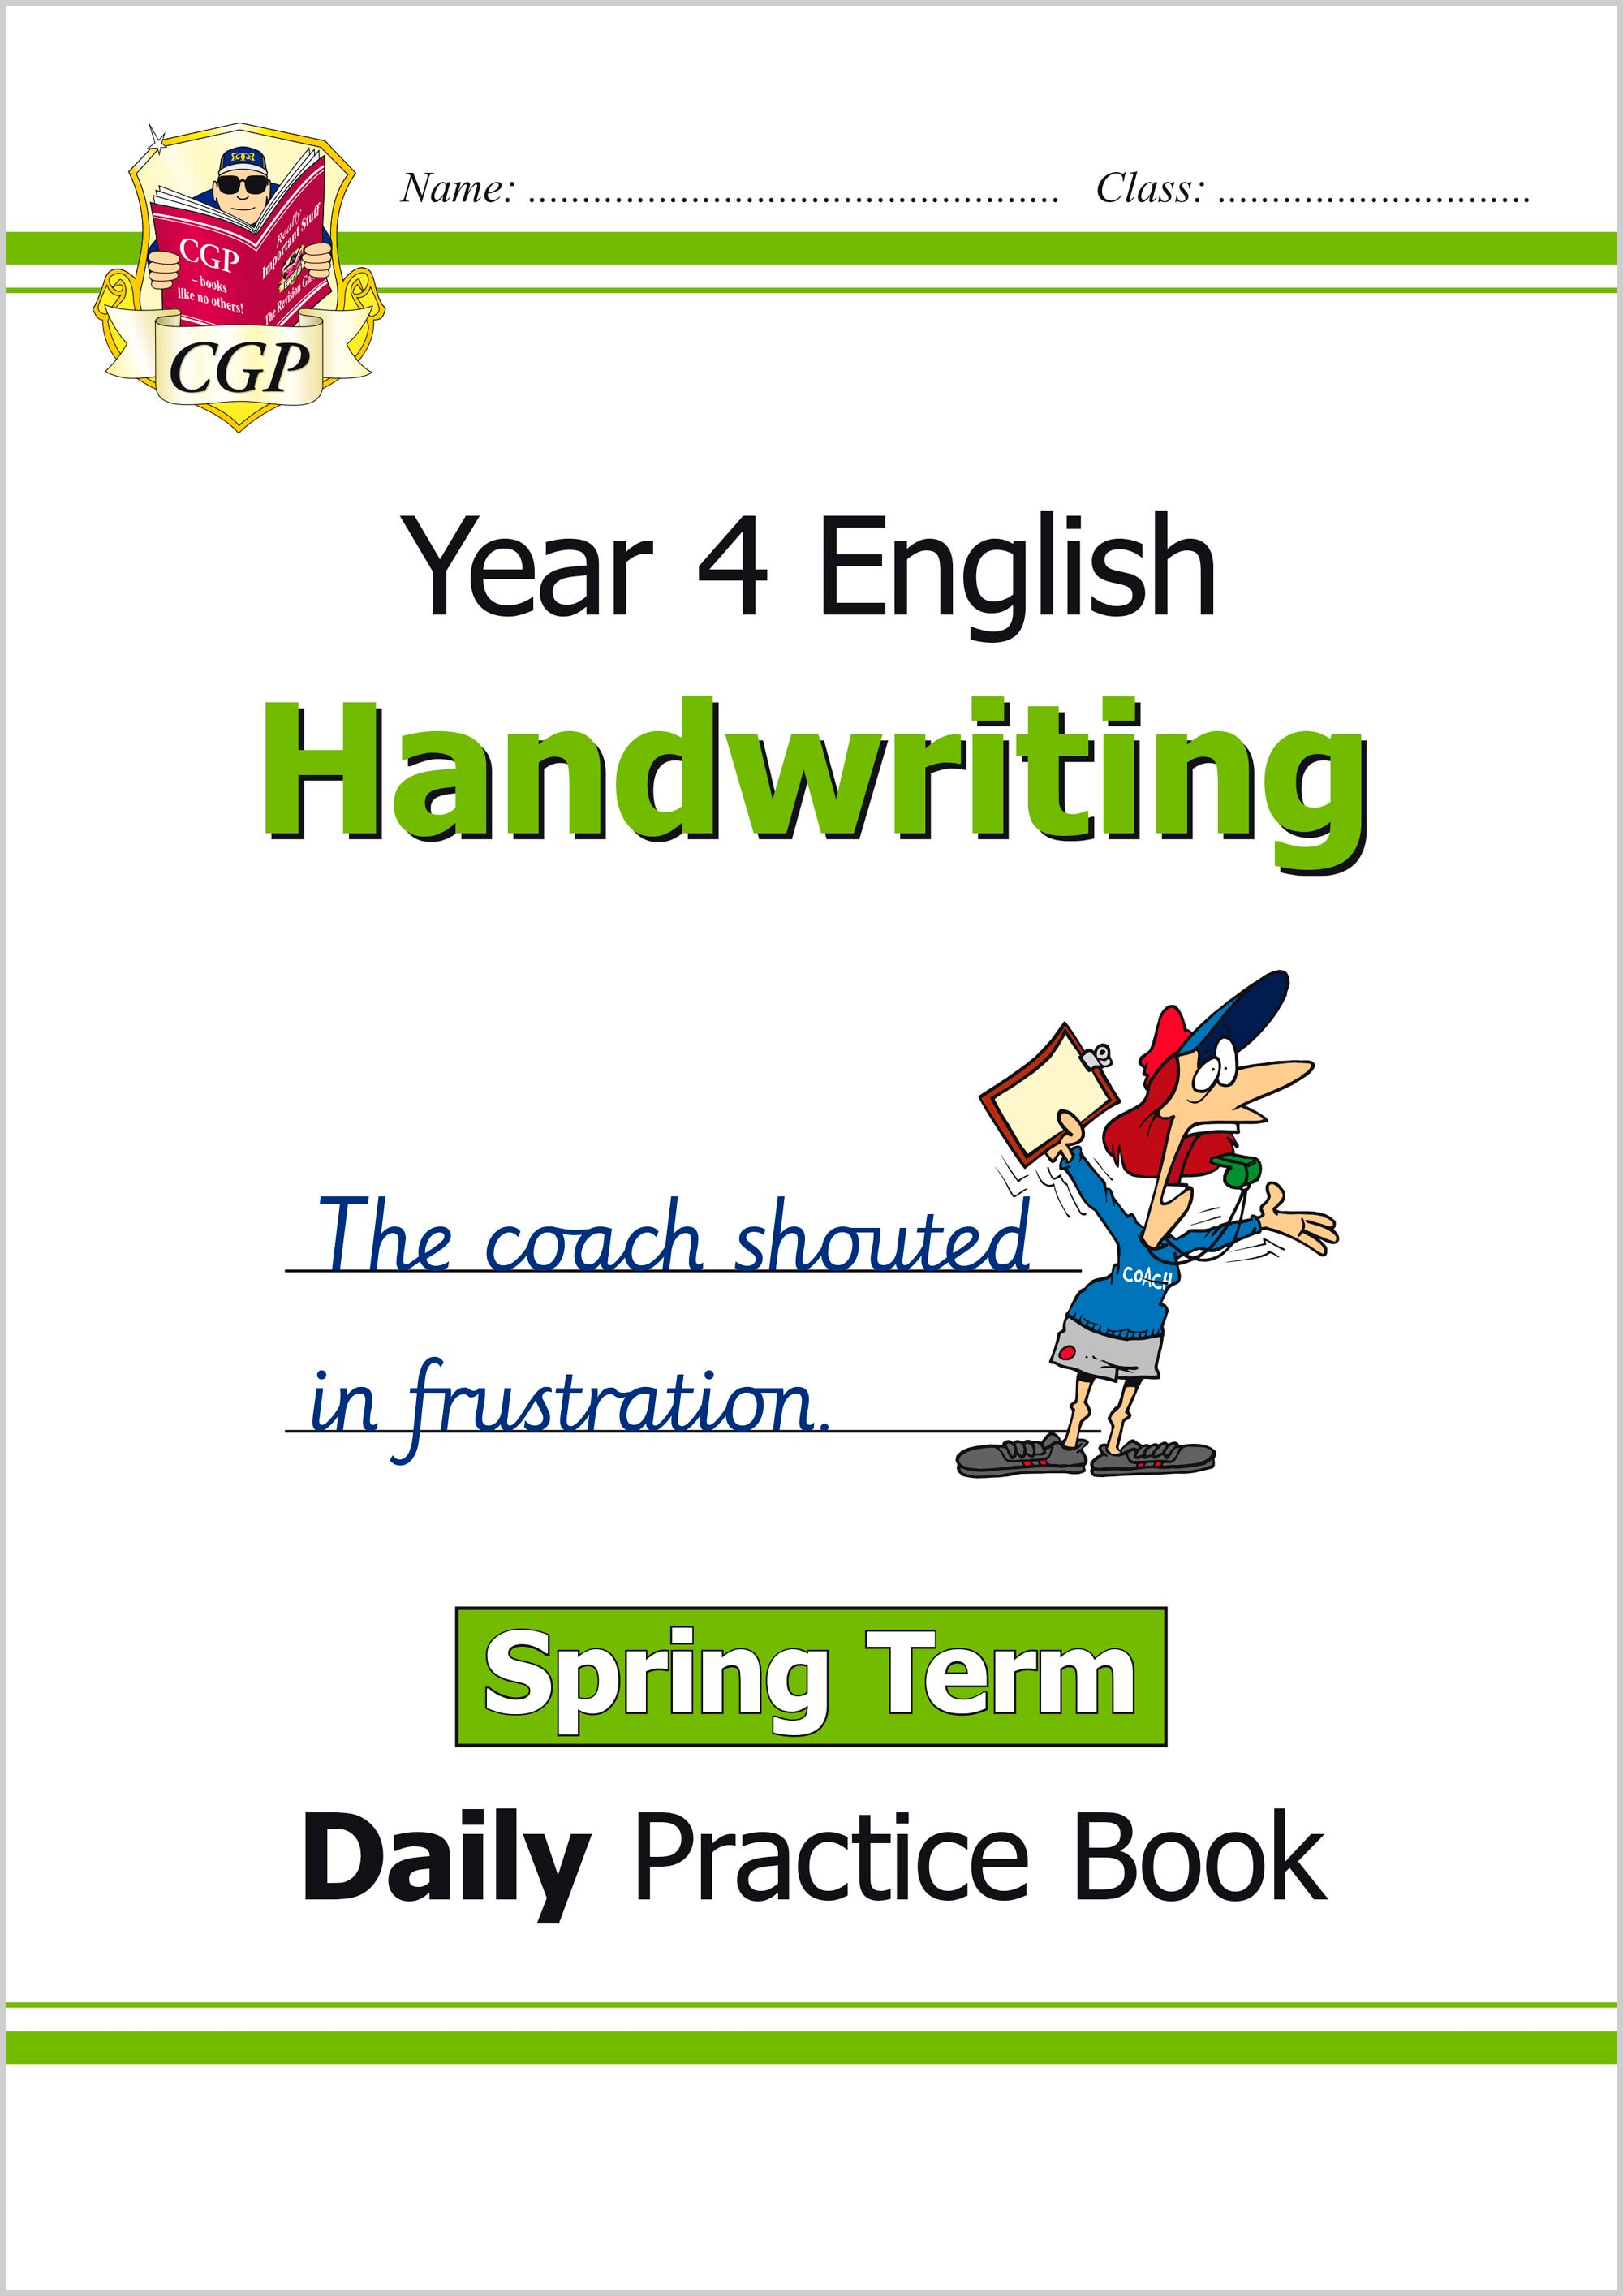 E4HWSP21 - New KS2 Handwriting Daily Practice Book: Year 4 - Spring Term